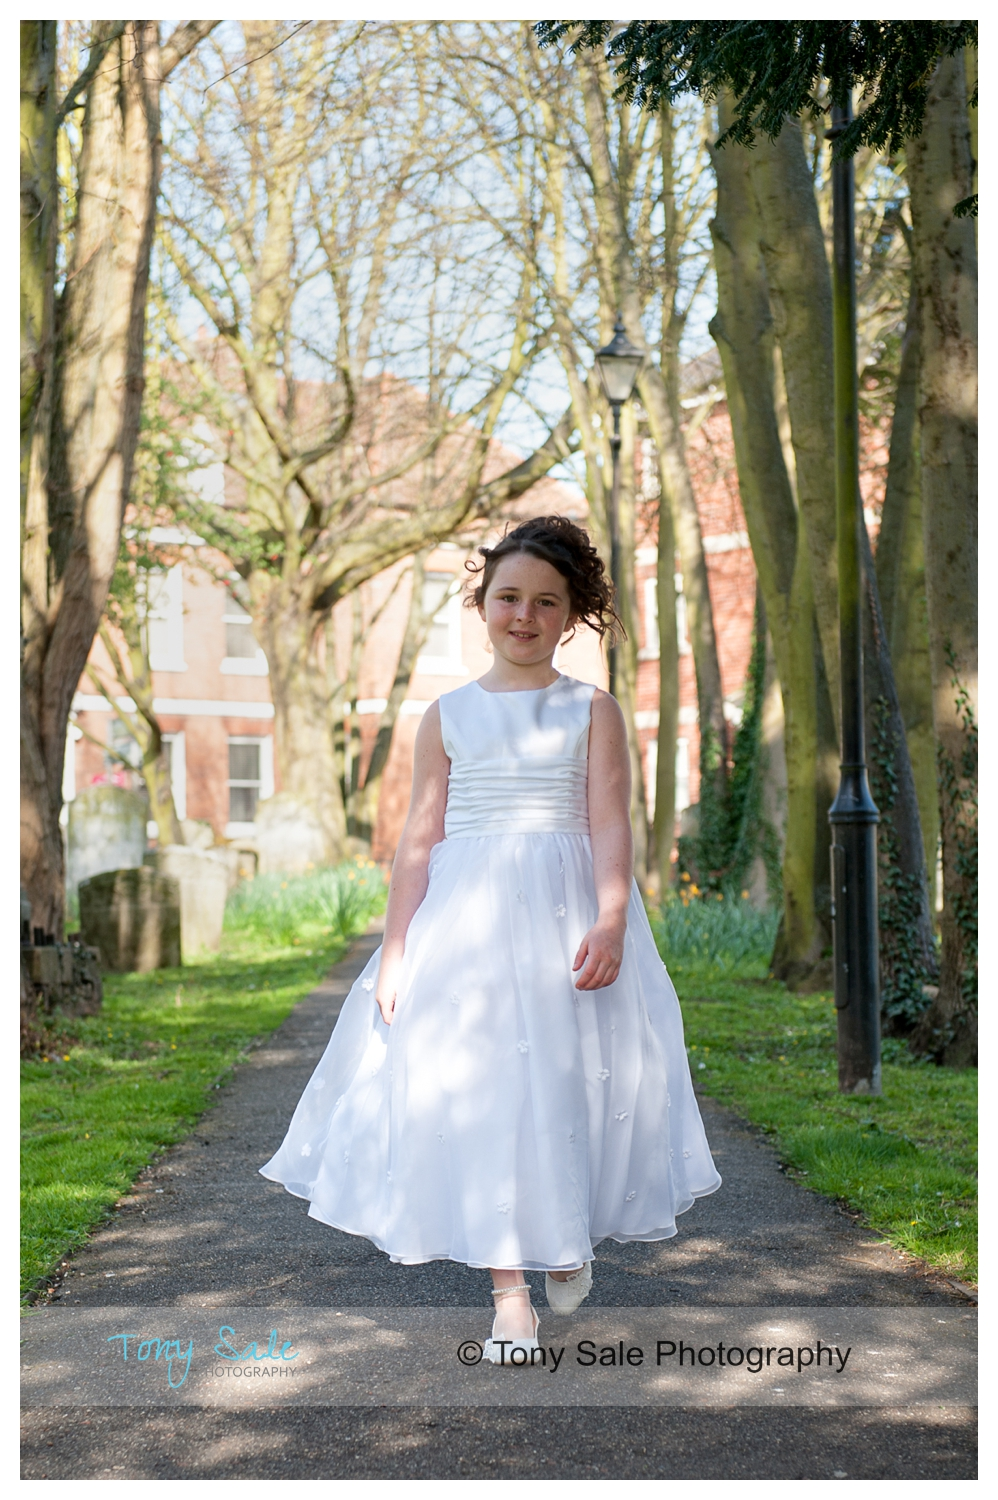 First Communion Dresses Essex_Tony Sale Photography_03